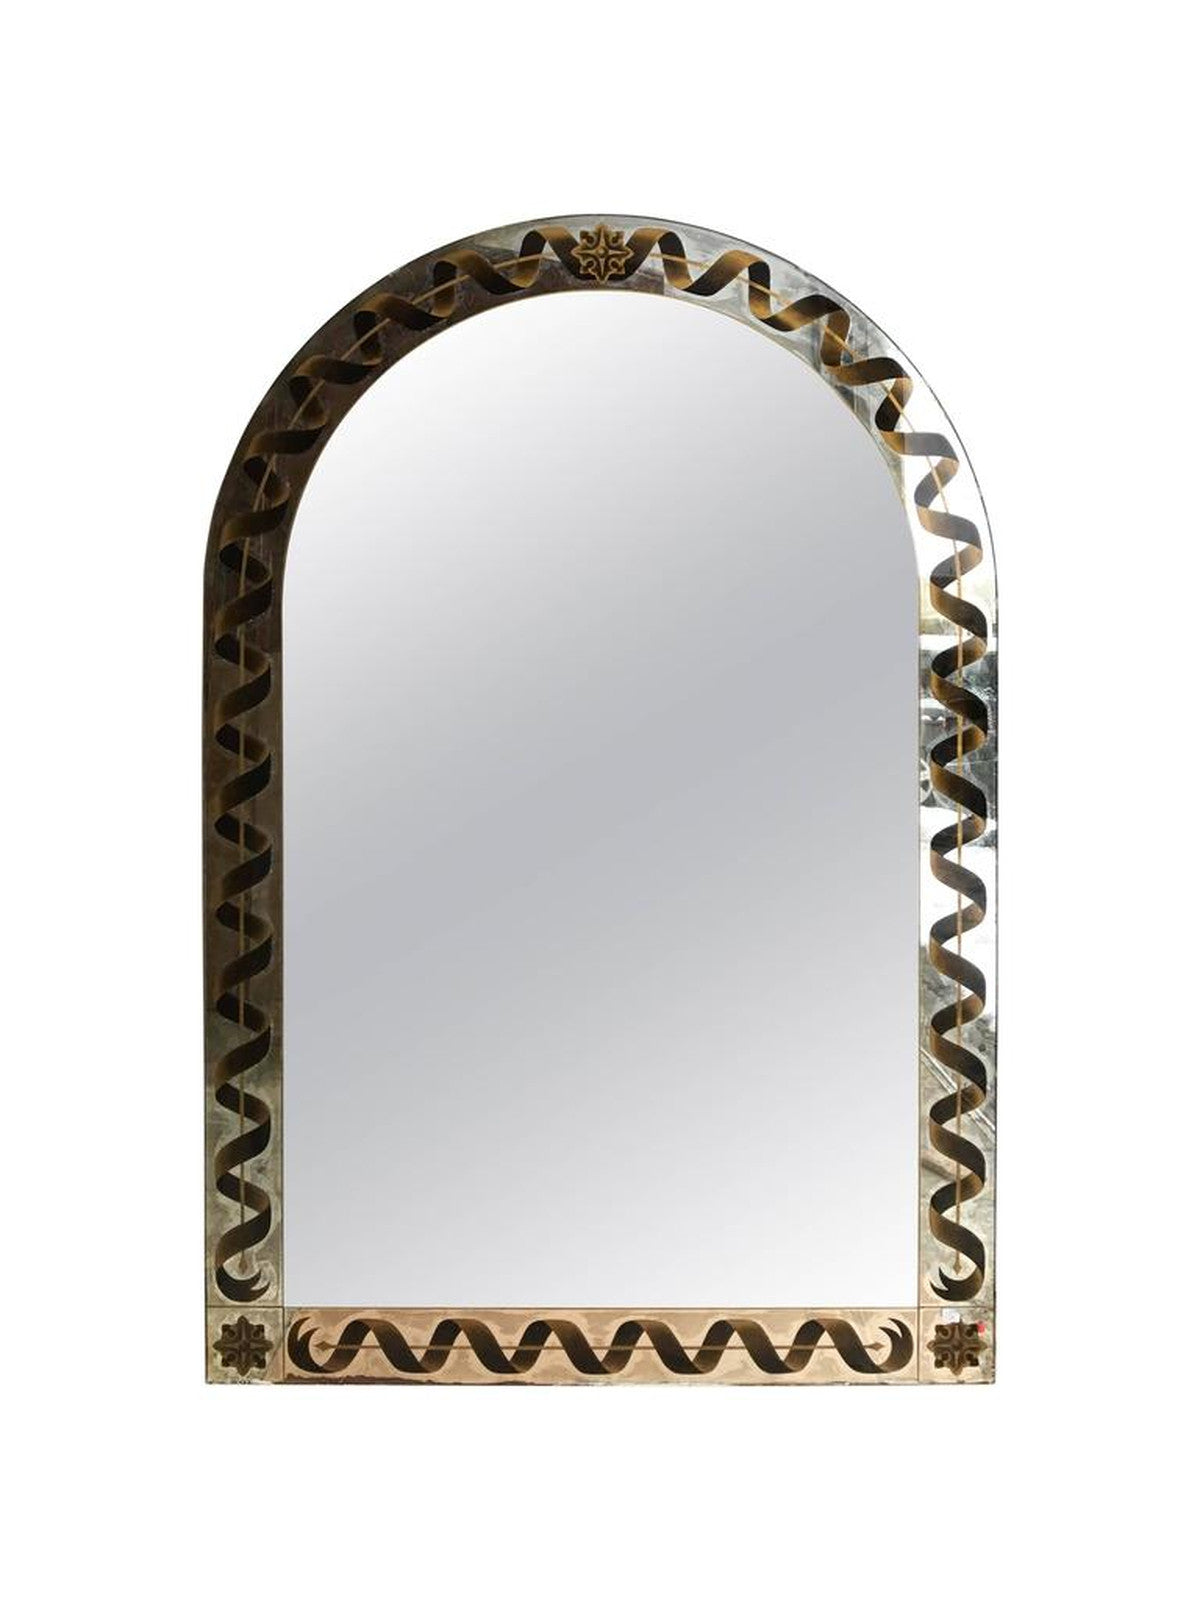 Églomisé Mirror with Ribbon Motif